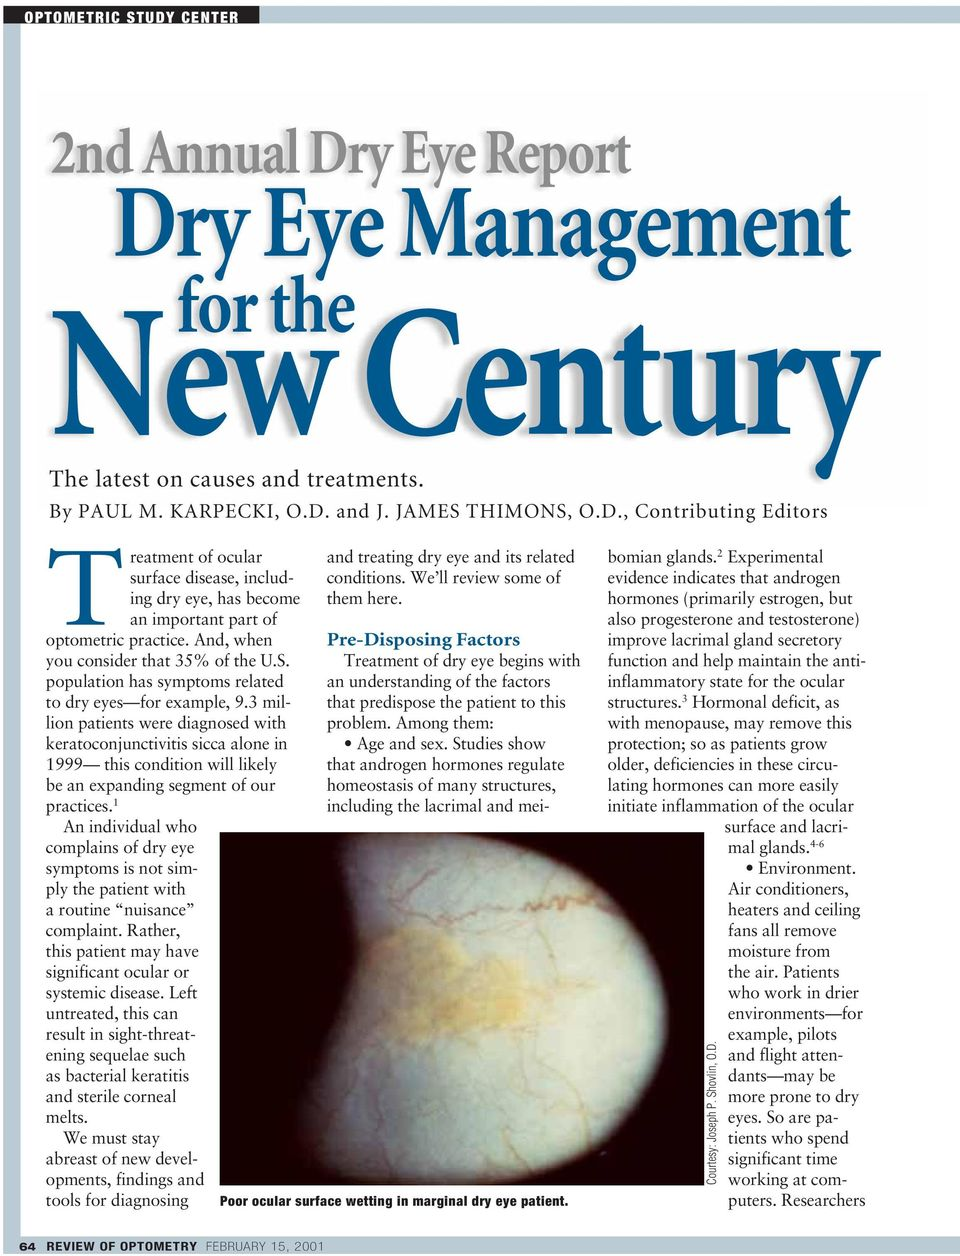 3 million patients were diagnosed with keratoconjunctivitis sicca alone in 1999 this condition will likely be an expanding segment of our practices.